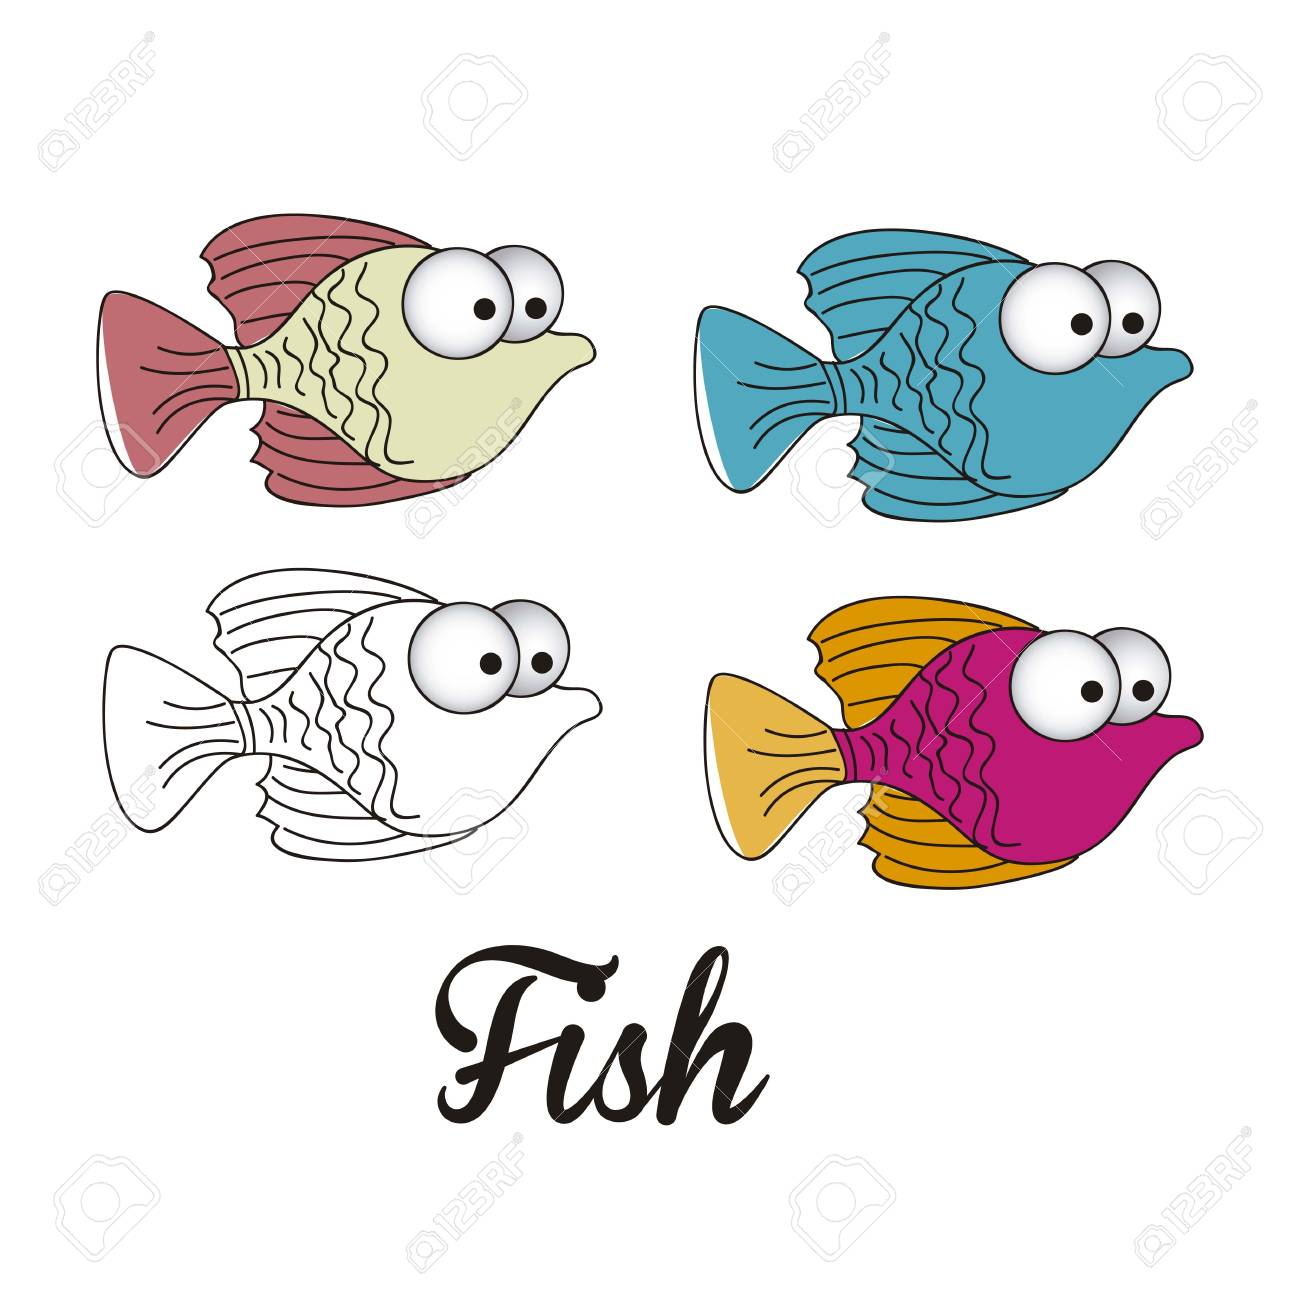 illustration of icons of fish, aquatic animals Stock Vector - 18759943